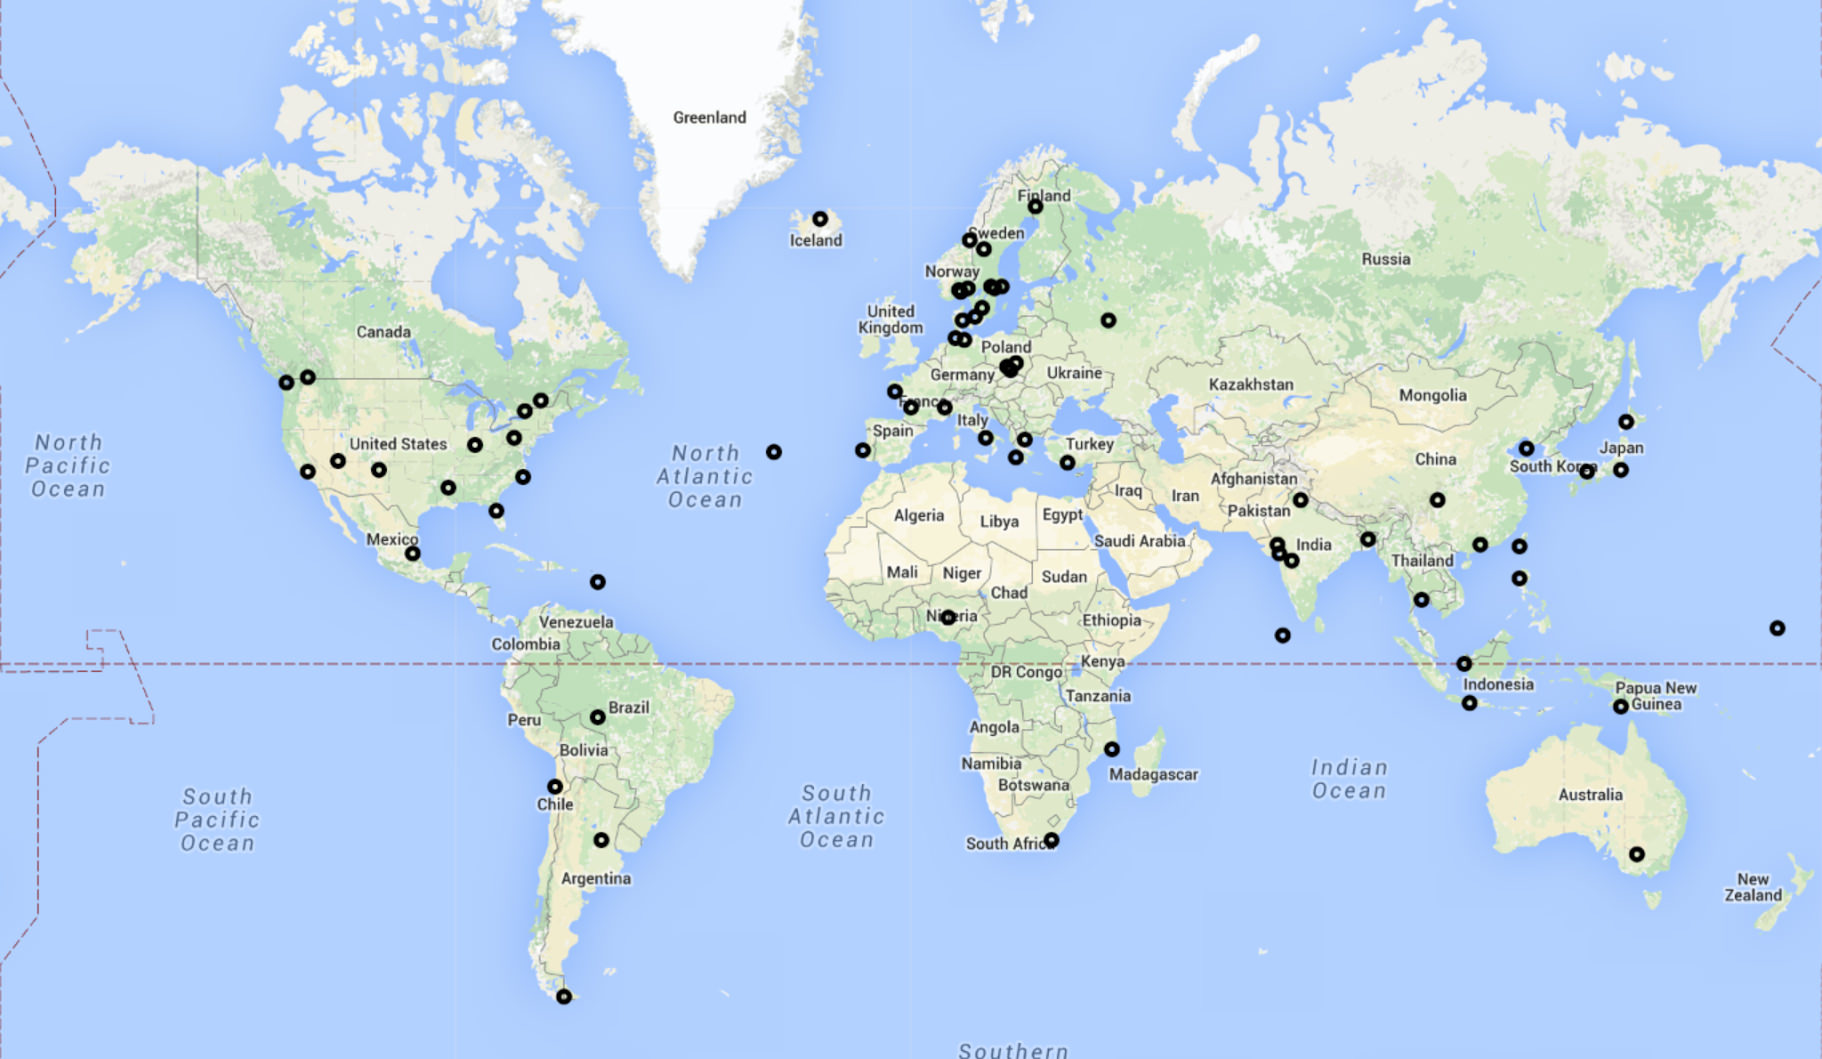 Map of new Flightradar24 receivers activated during the first two weeks of September.